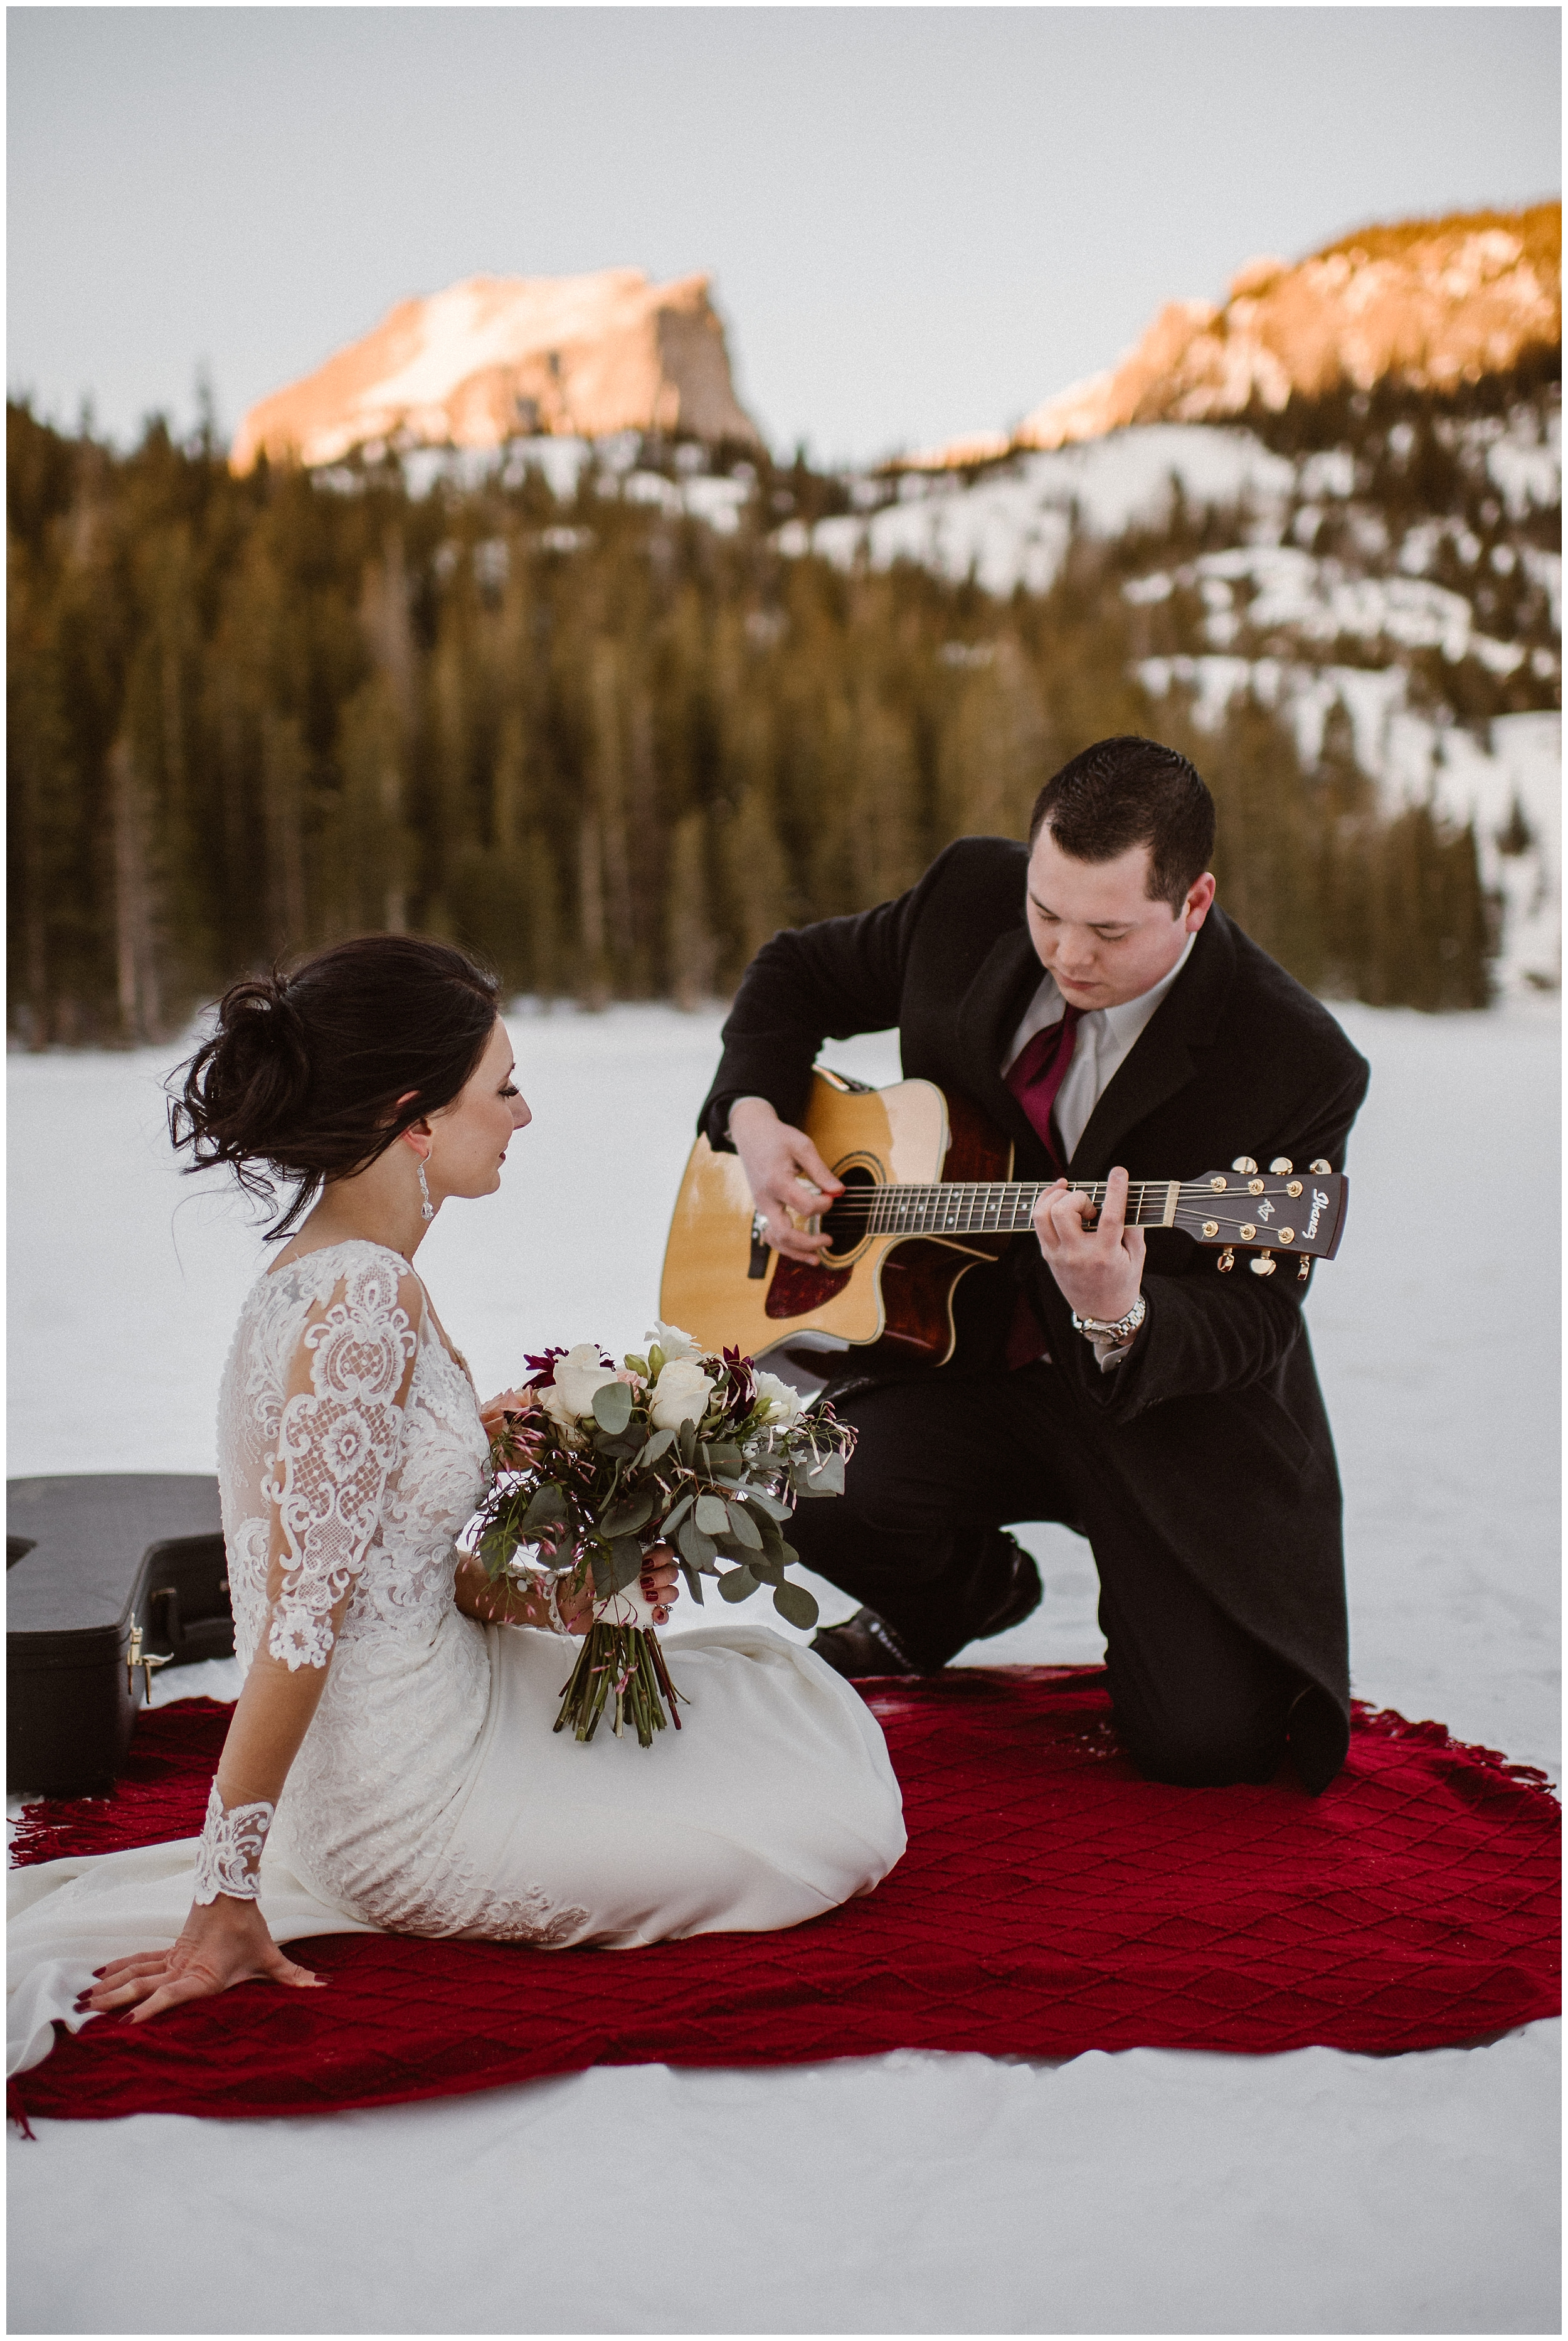 A groom plays the guitar for his bride as he kneels on a bright red blanket. The bride, sitting on the blanket with the groom, holds a beautiful bouquet of flowers. All around them a snowy paradise can be seen. This elopement photo was captured by Adventure Instead, an elopement wedding photographer.